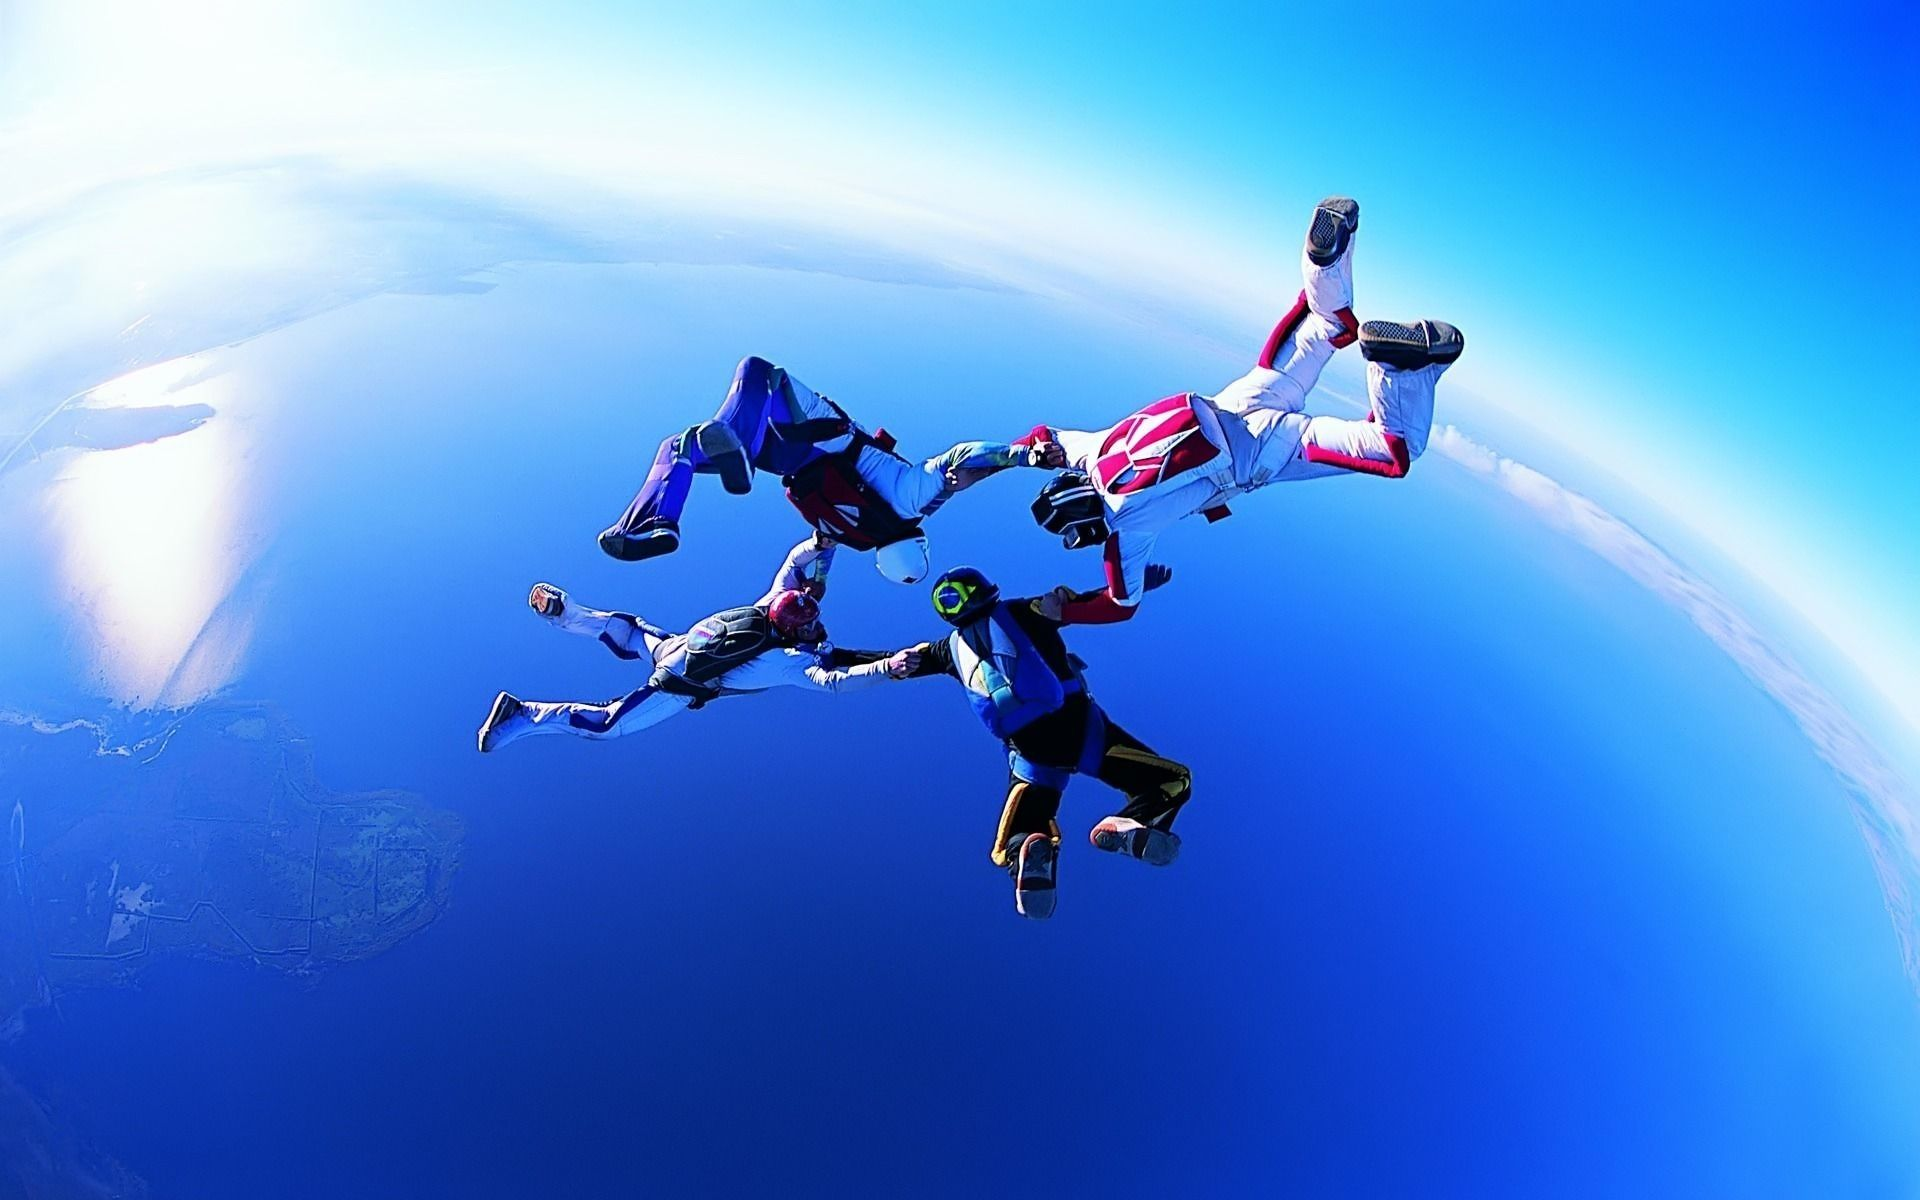 1920x1200 - Skydiving Wallpapers 23